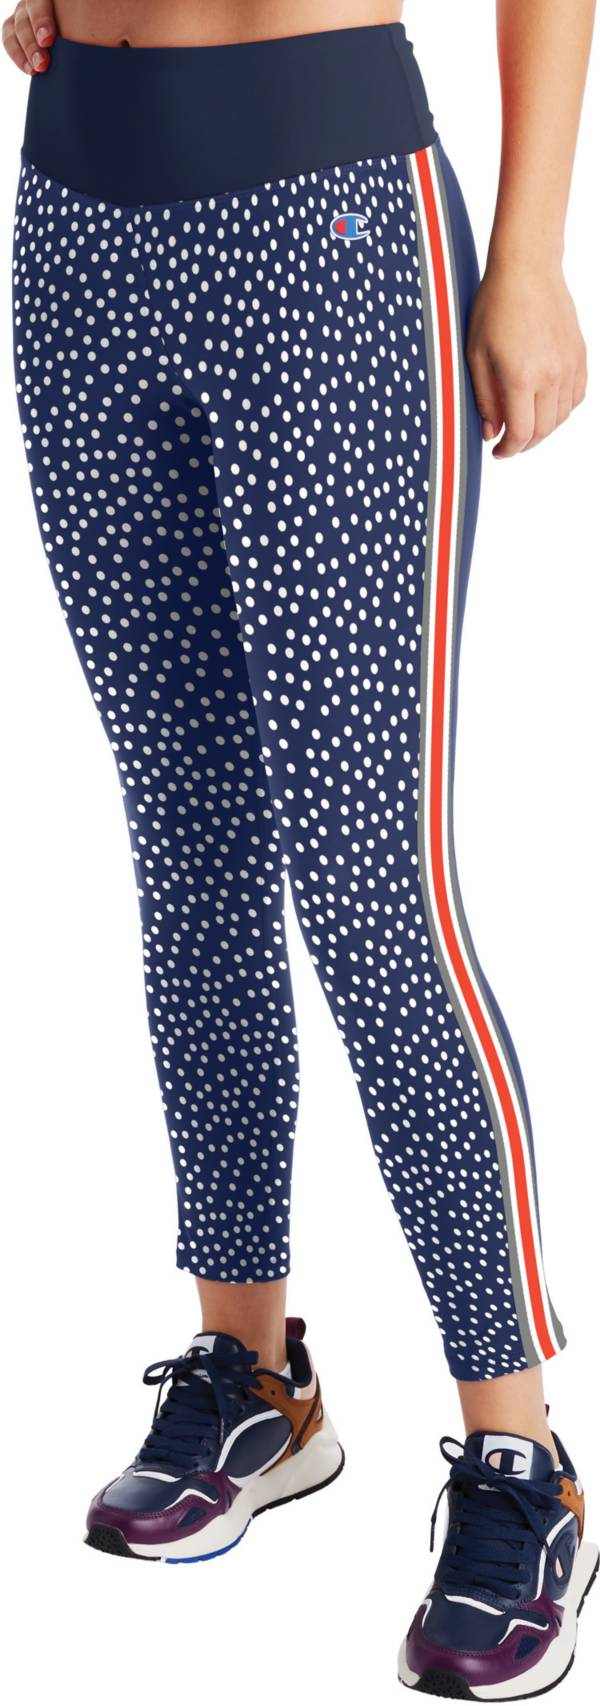 Champion Women's Printed High Rise Tights product image